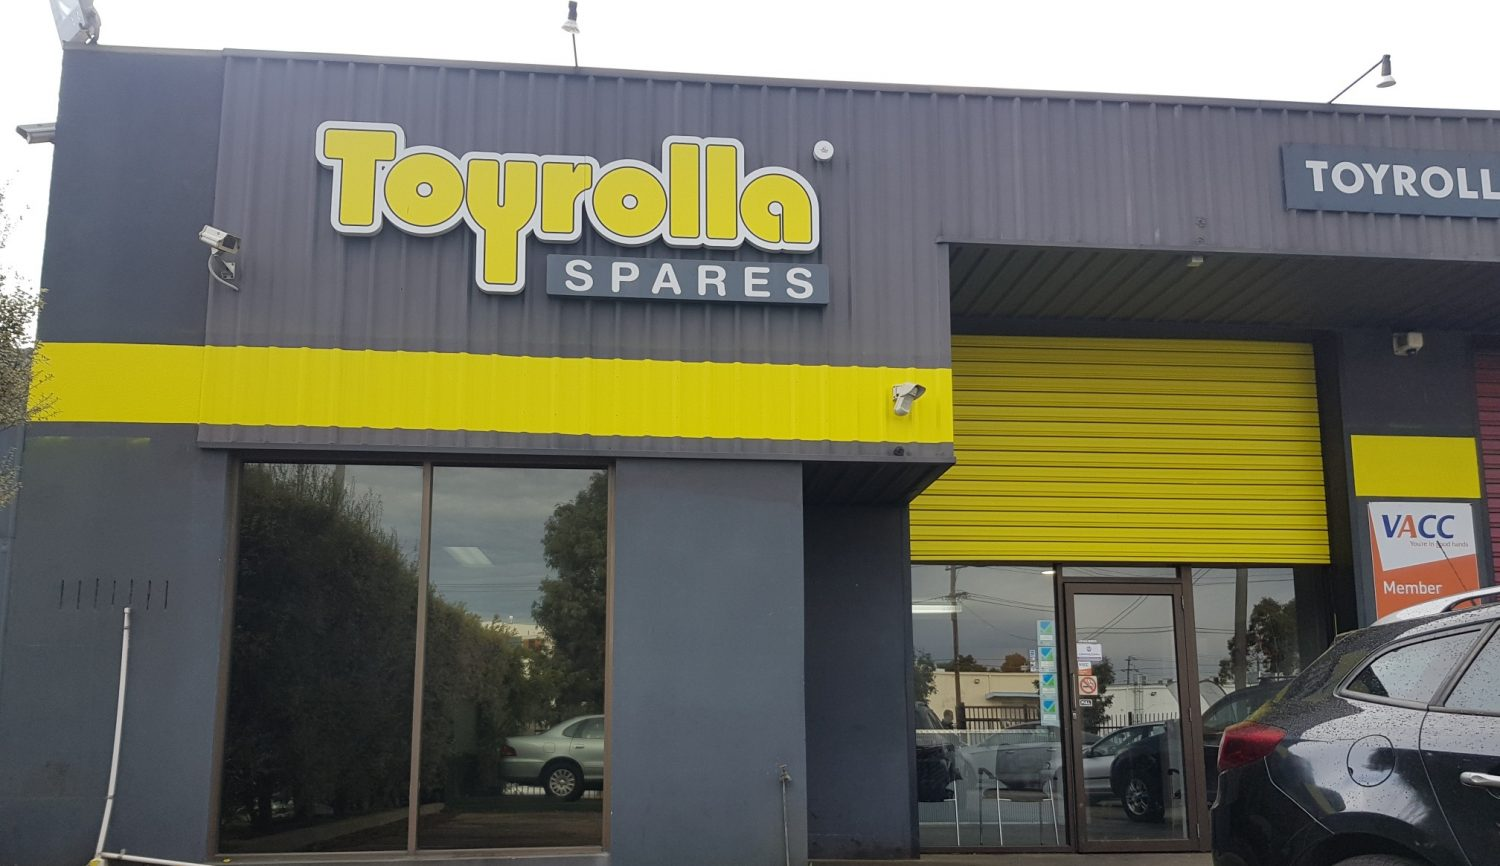 Used Spare Parts & Wreckers of Toyotas - Toyrolla Spares